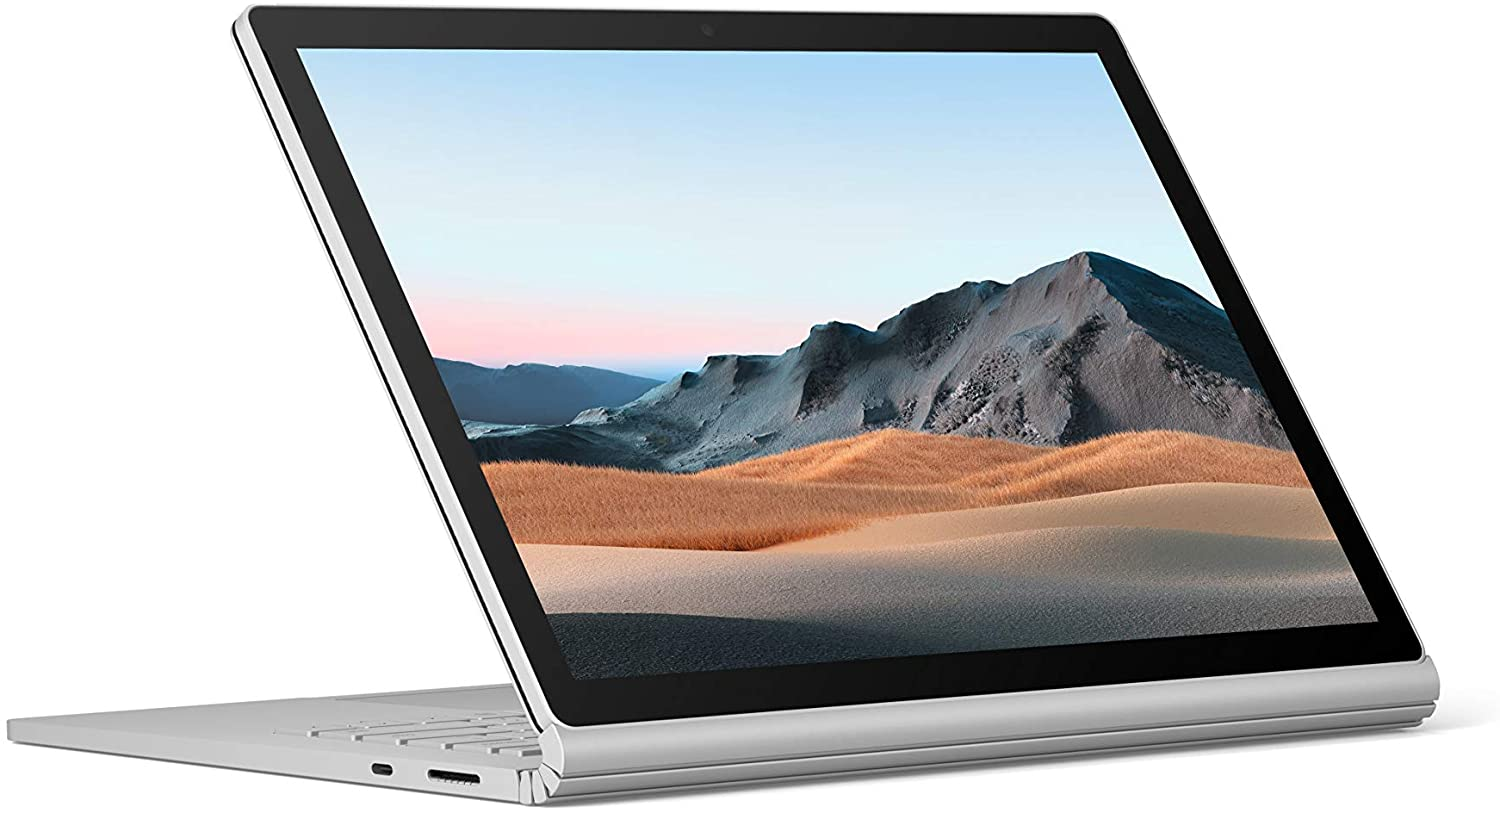 Microsoft Surface Book 3  SKW-00013 Core i7, RAM 16GB, 256GB SSD, Windows 10 Home, Silver SKW-00013